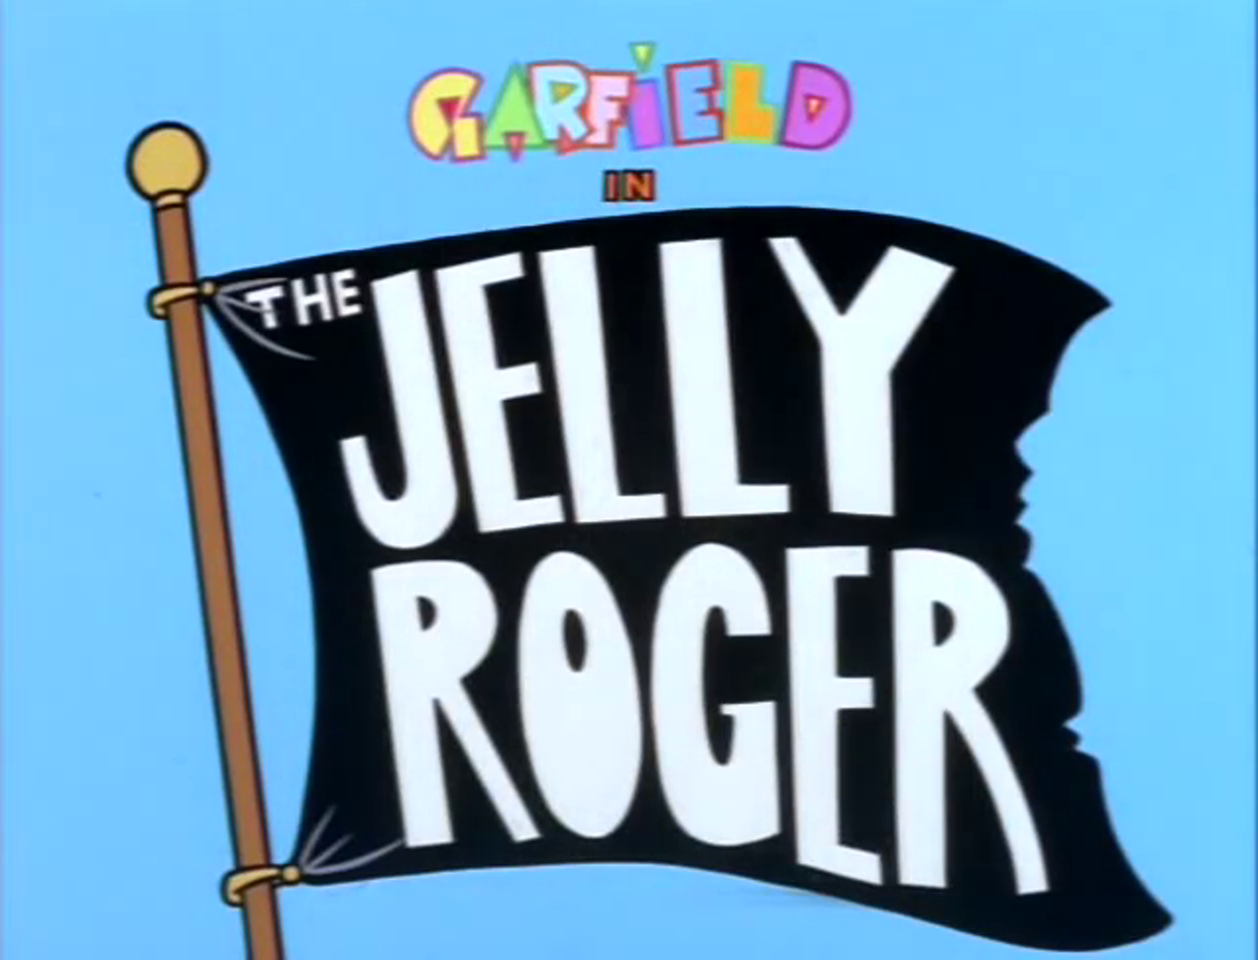 The Jelly Roger